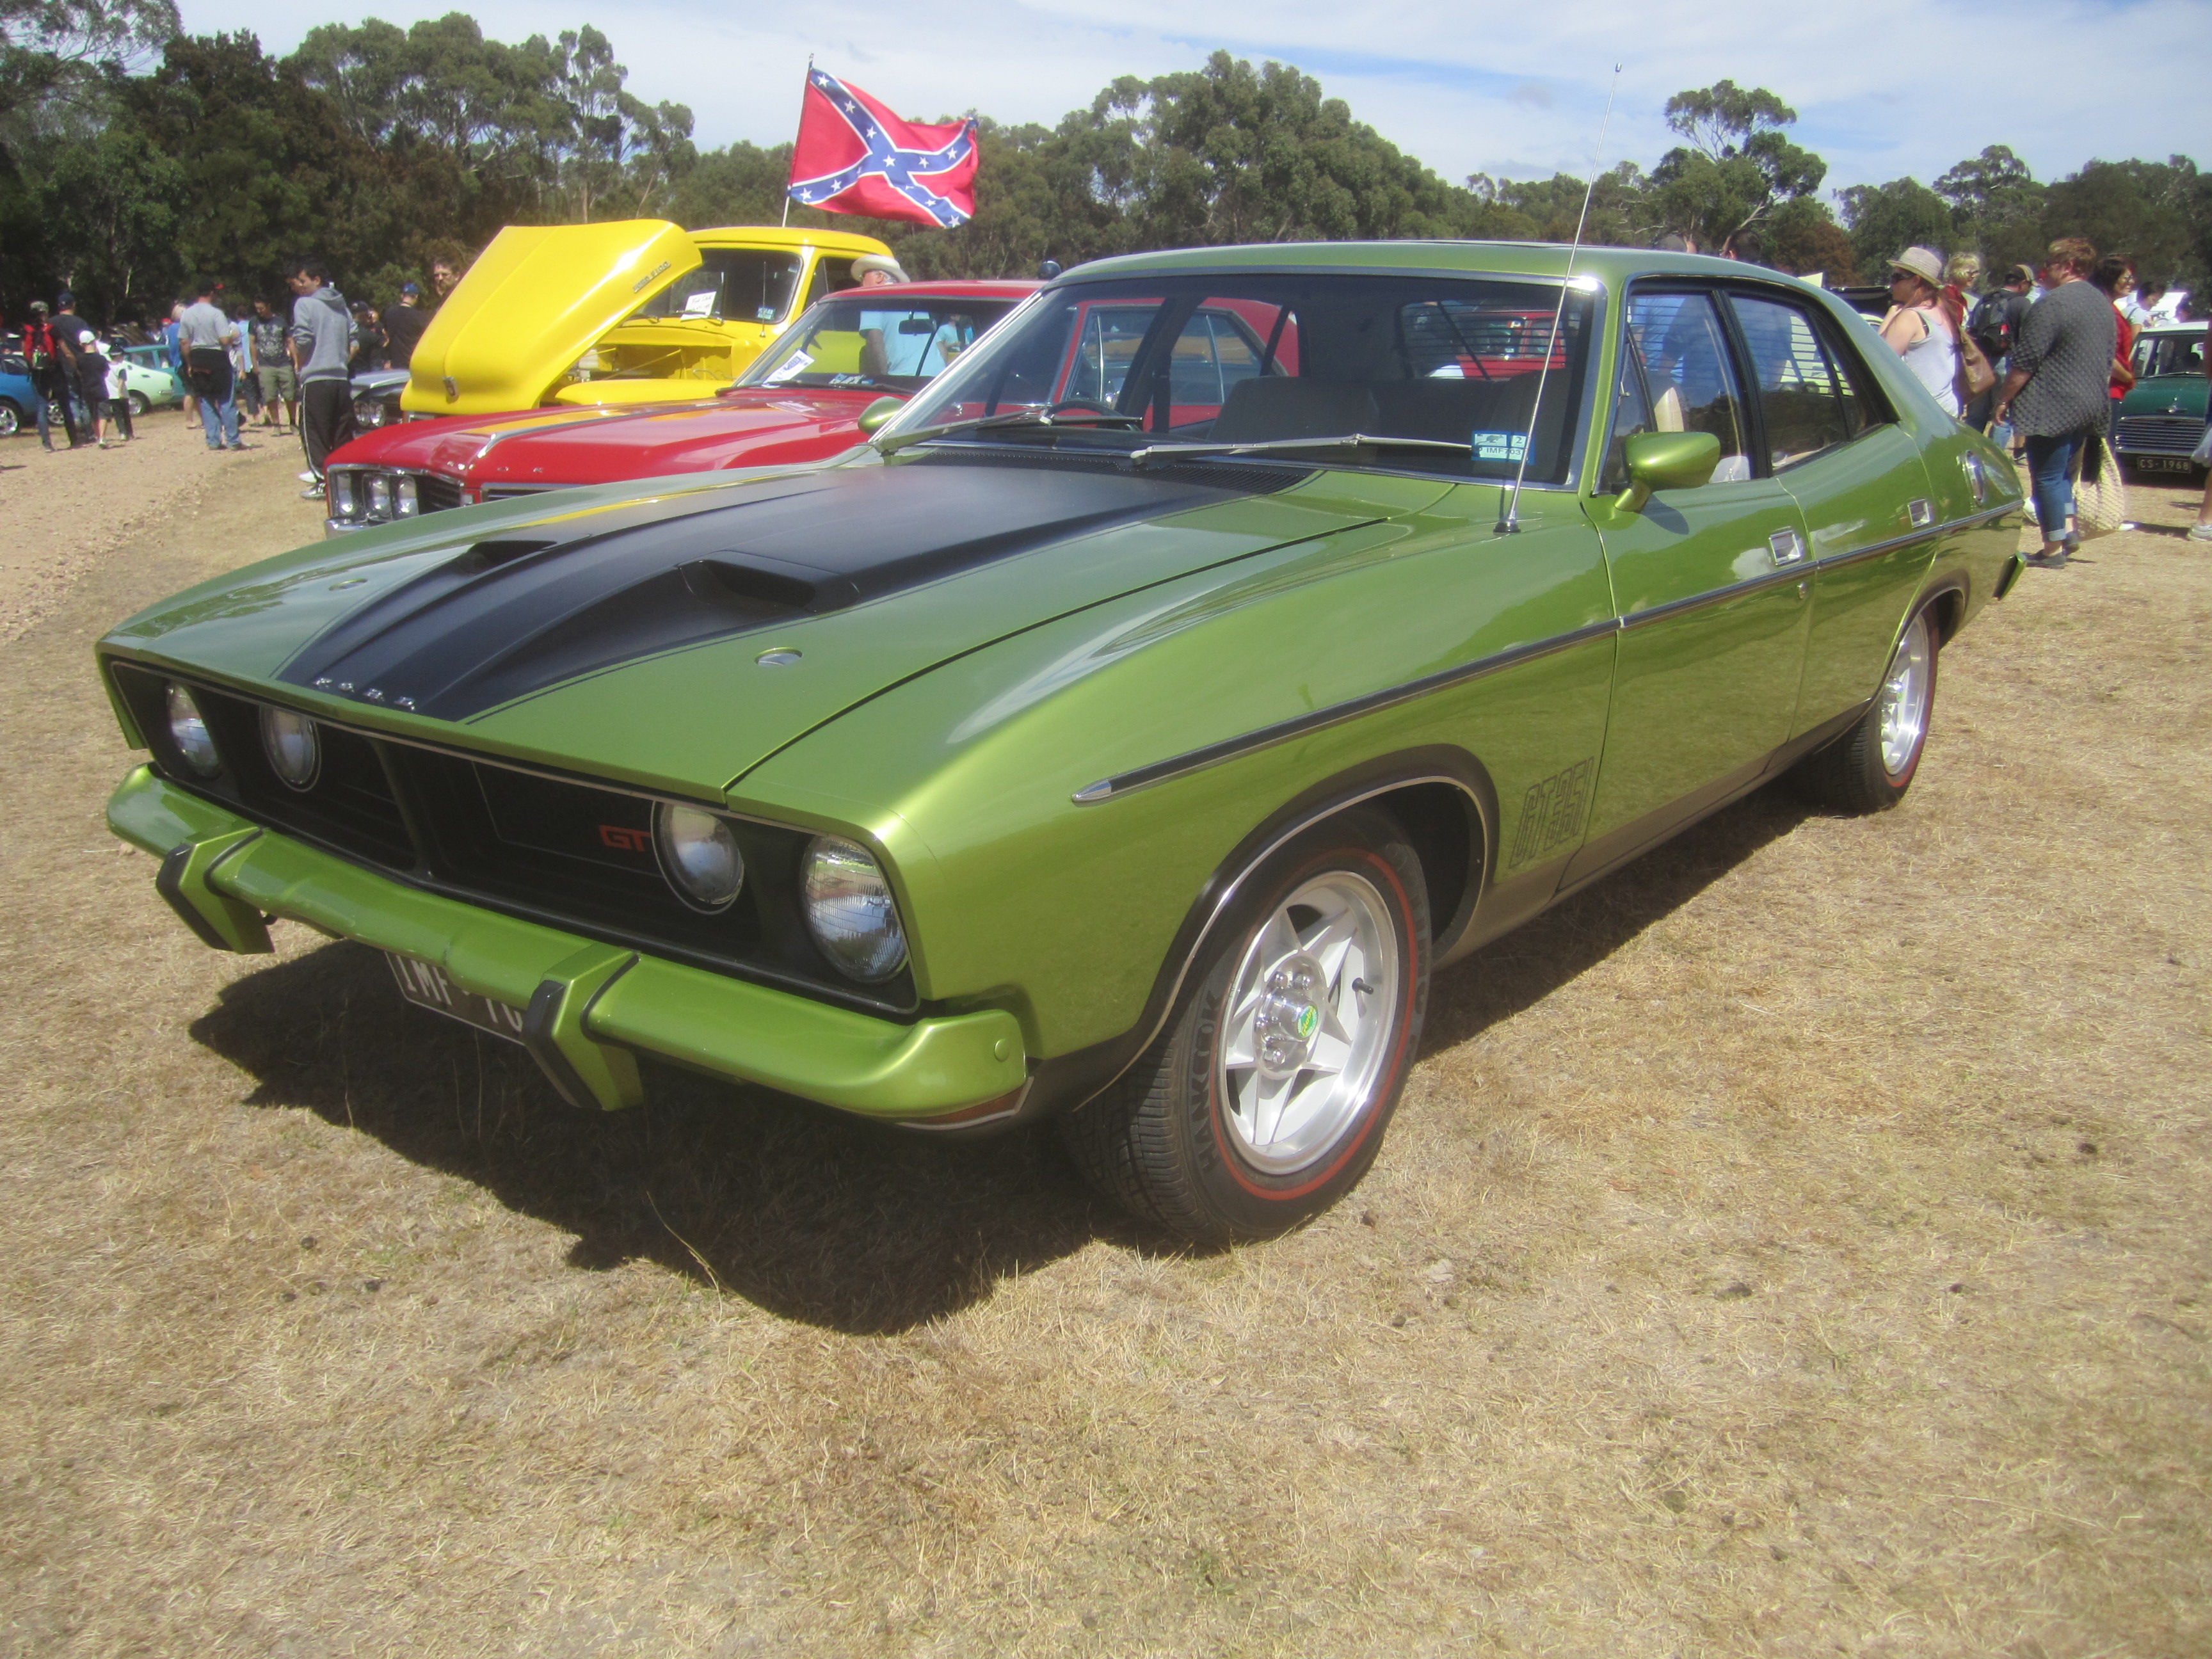 LOWBA1C9MX8BD9DG likewise 1973 ford falcon 351 xa gt coupe 1024x768 moreover Los Mejores Coches Cine Ciencia Ficcion 270723 additionally Top 5 Cool Australian Muscle Cars likewise 50 Coolest Movie Cars. on 1973 ford xb falcon gt351